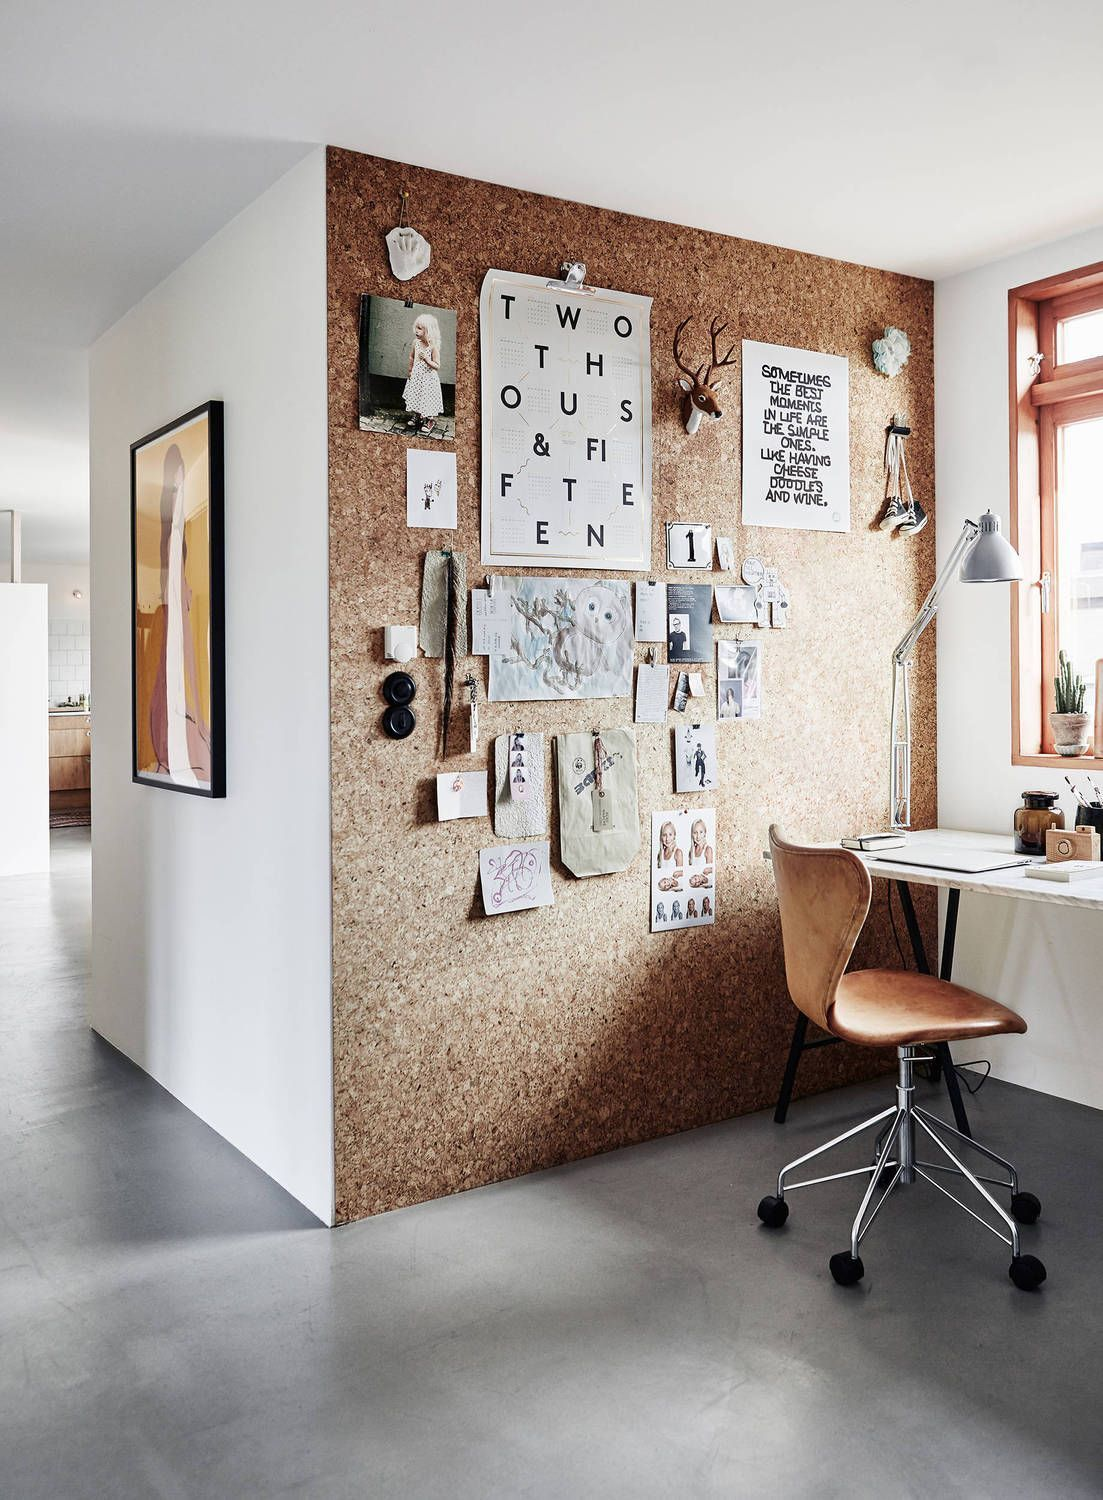 I Like The Idea Of A Cork Wall In Dorm Bc Then U Can Hang Up Reminders And Also It Work As Decoration For Room